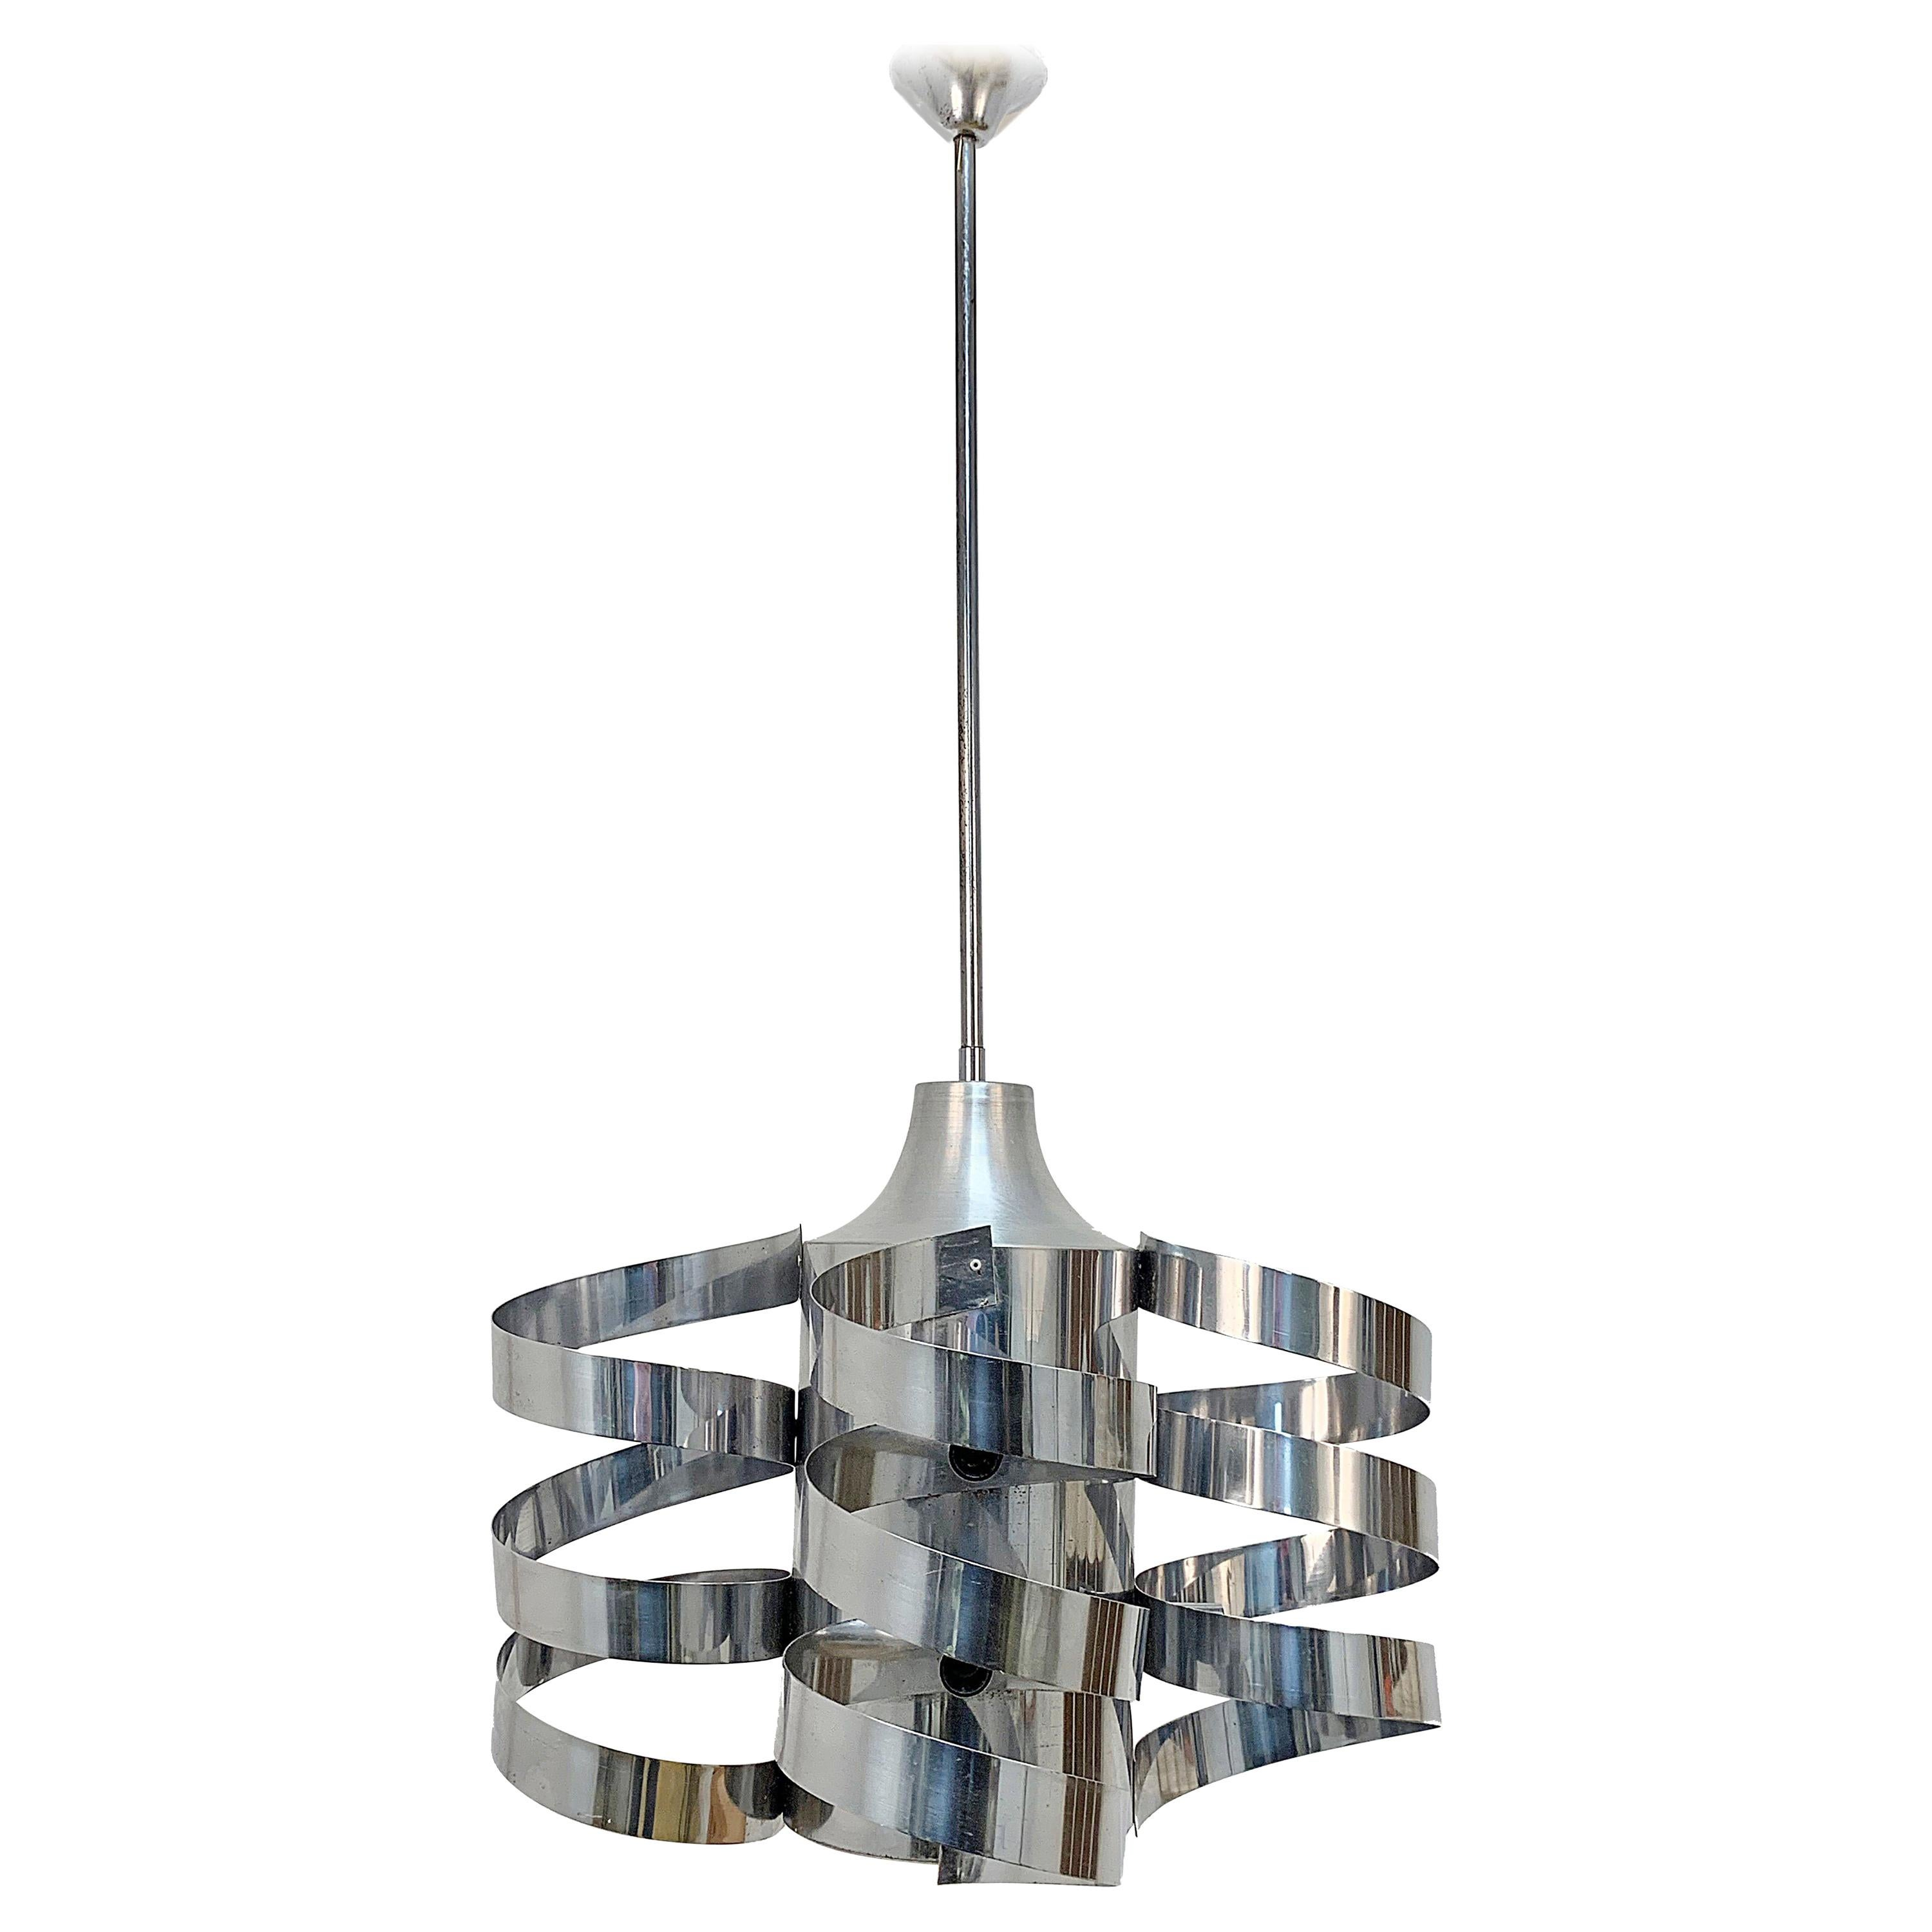 Chandelier Cyclone, Steel Chrome and Aluminum, Attributed to Sauze for Sciolari